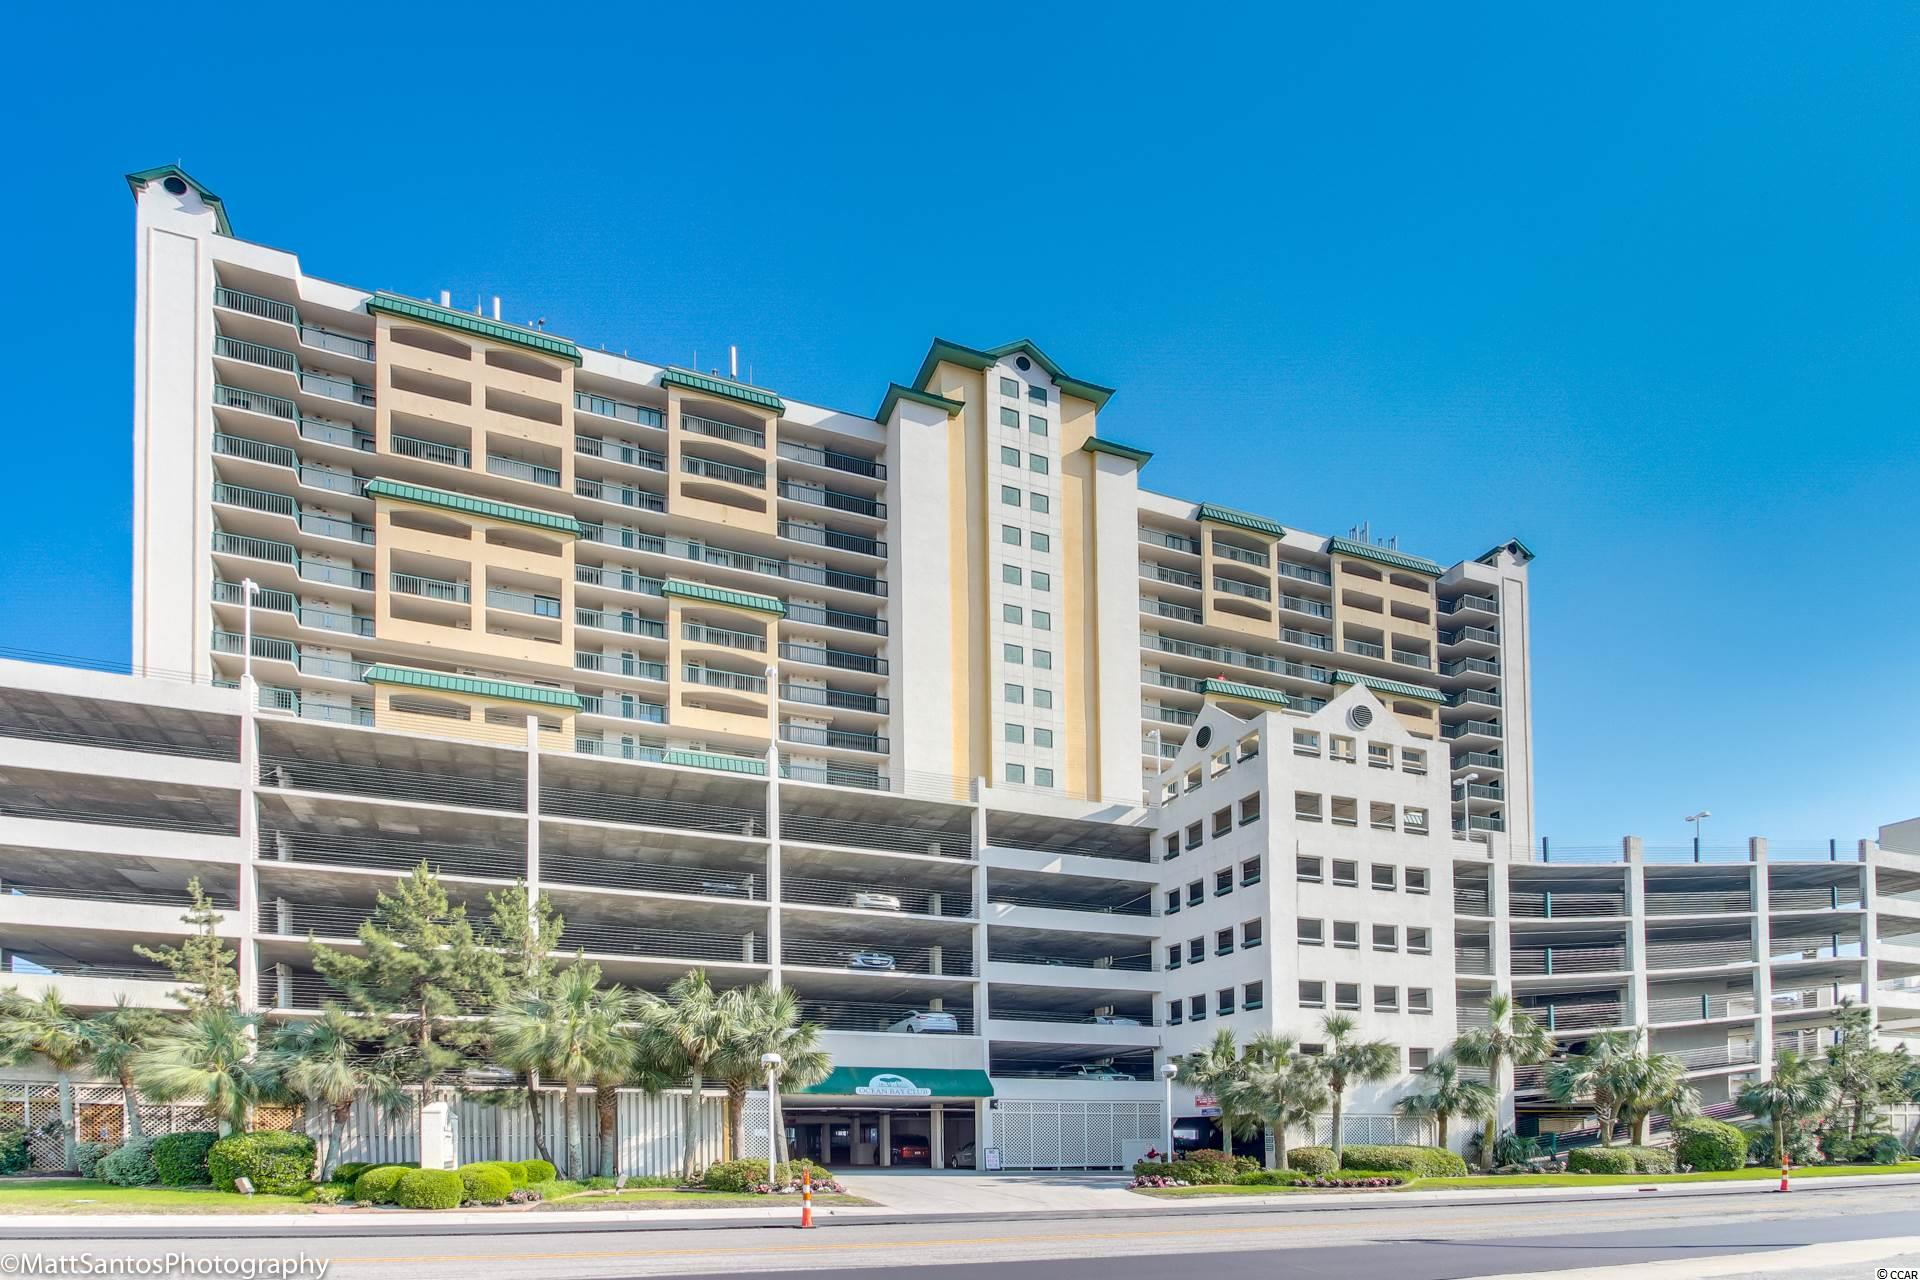 OBC 4BR/3BA Oceanfront 1st floor condo!  Beautiful ocean views, nicely decorated.  Amenities include: indoor/outdoor pools, lazy river, hot tub & more!